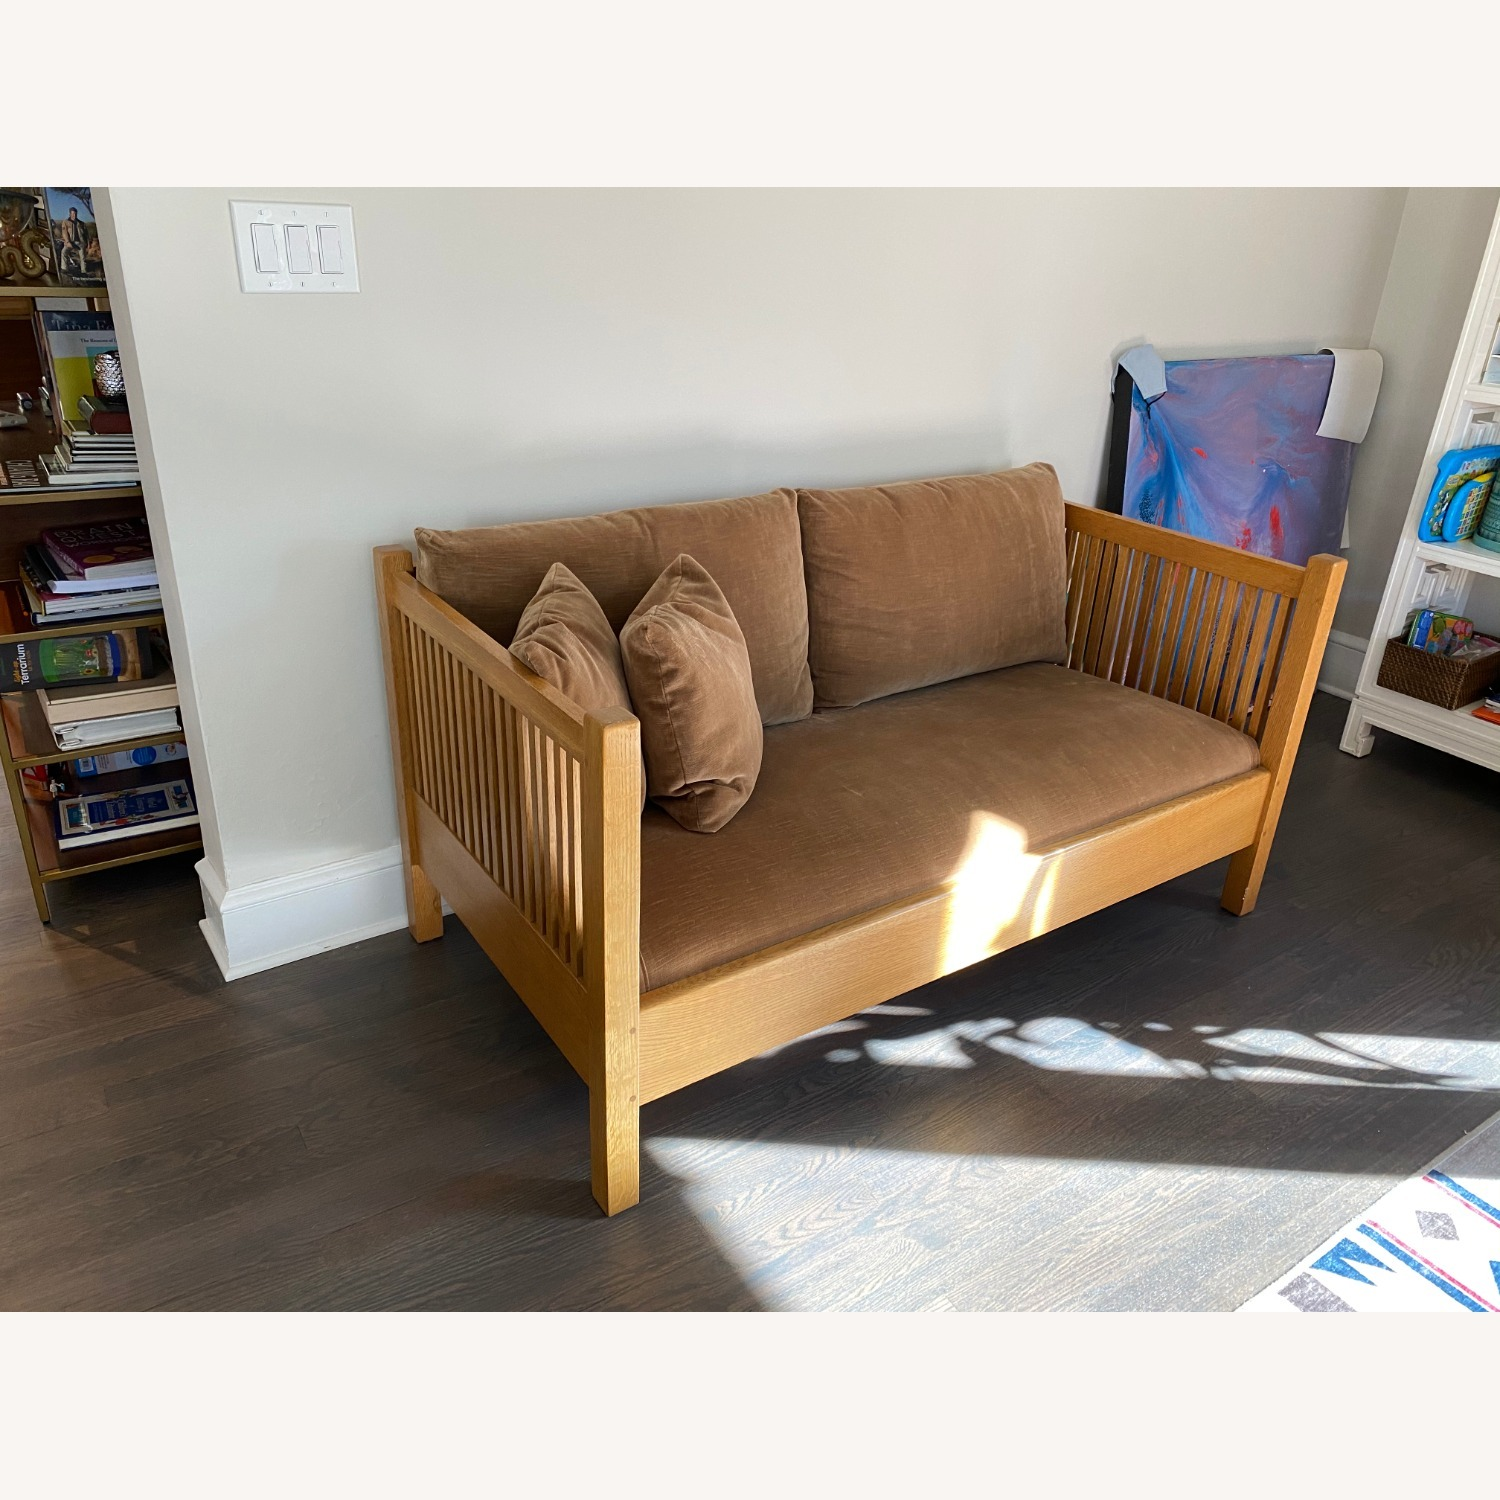 Stickley Sofa-Mission Style Oak Spindle Collection - image-5